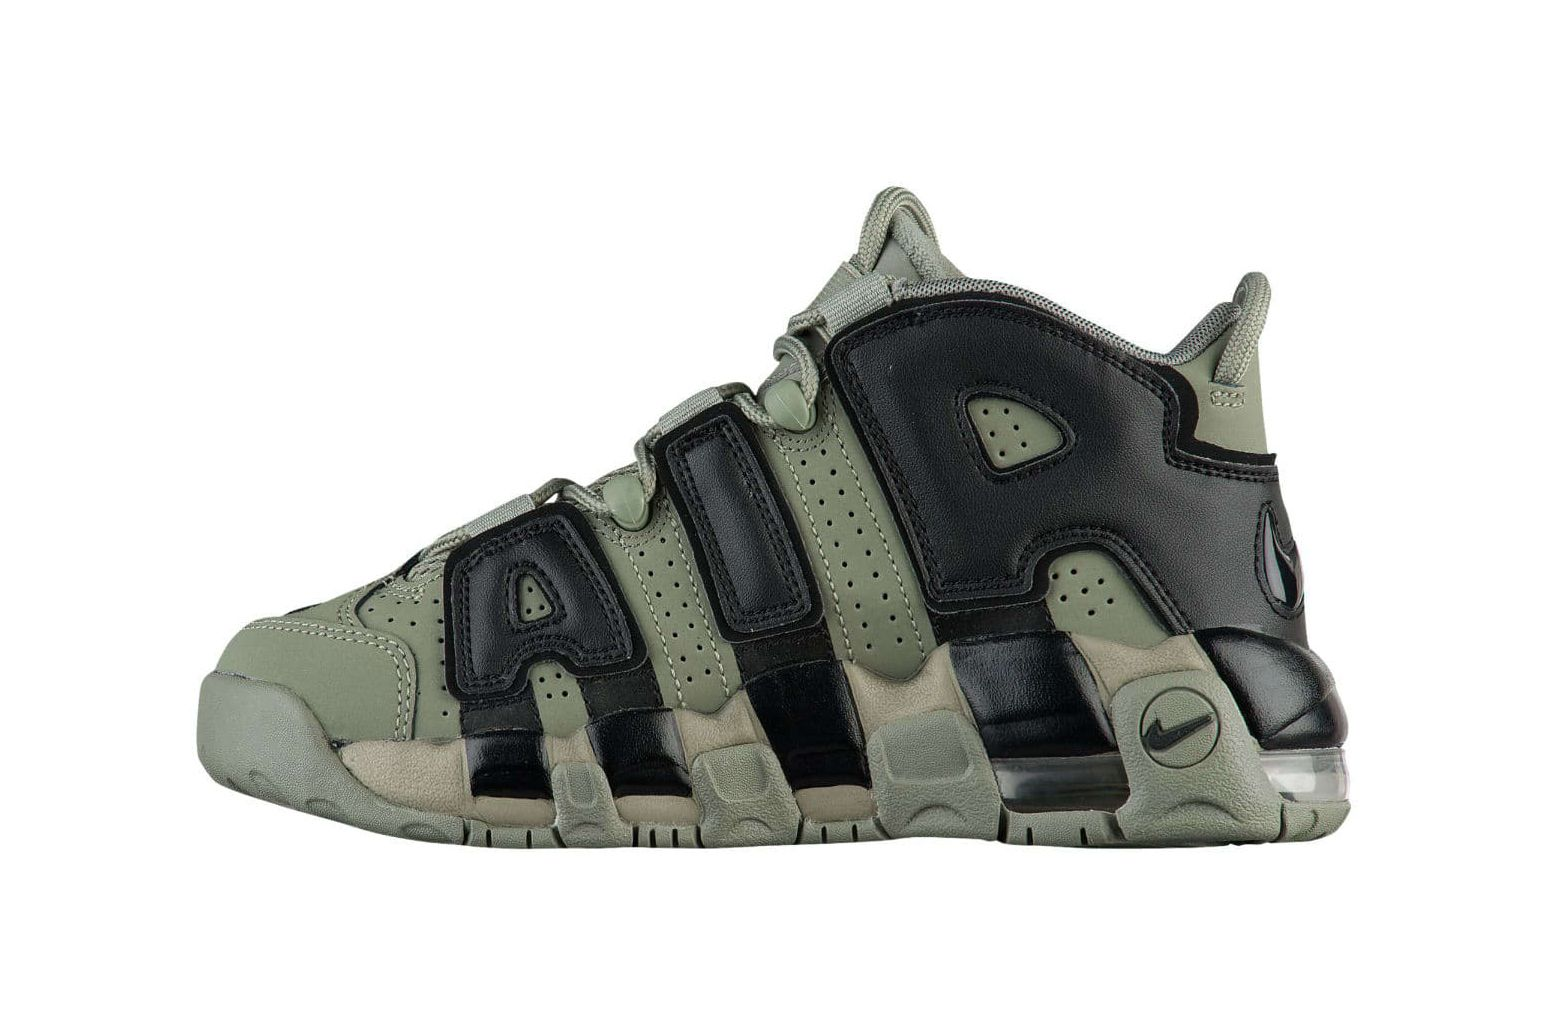 48a9de6e3e8 Nike Air More Uptempo Gets